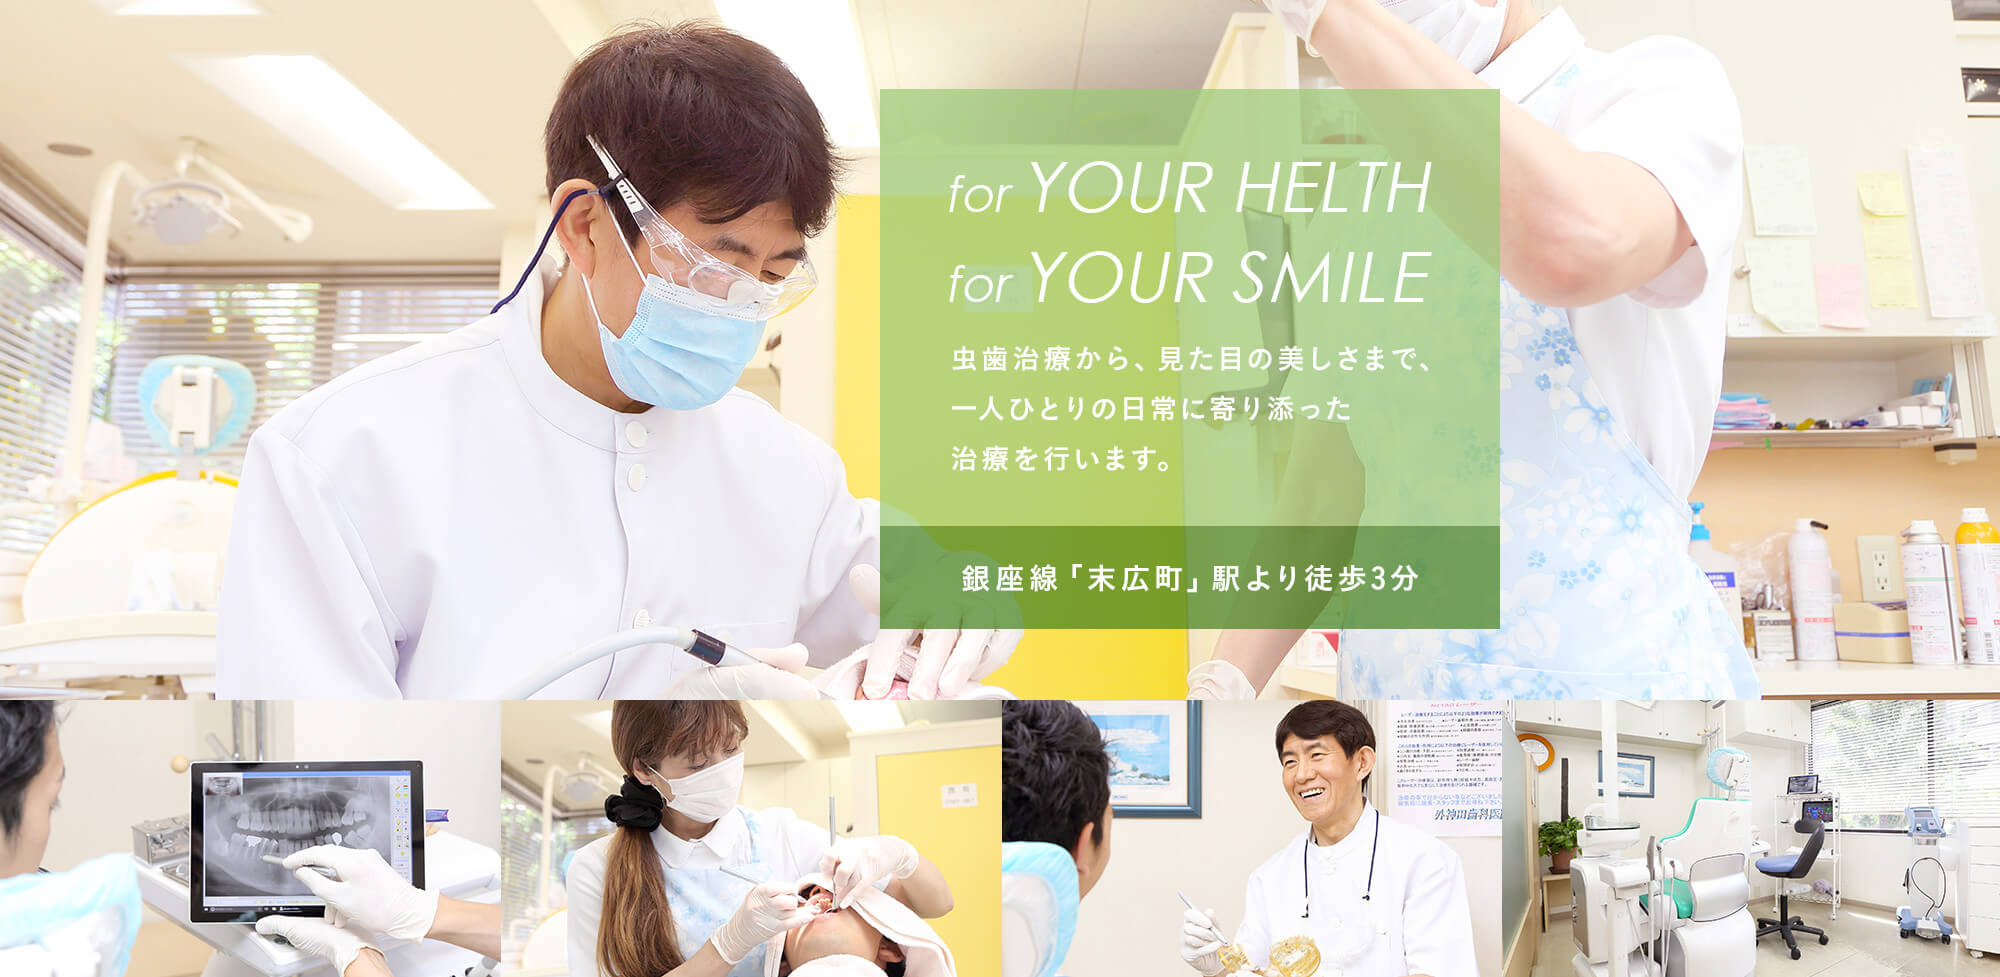 for YOUR HELTH for YOUR SMILE